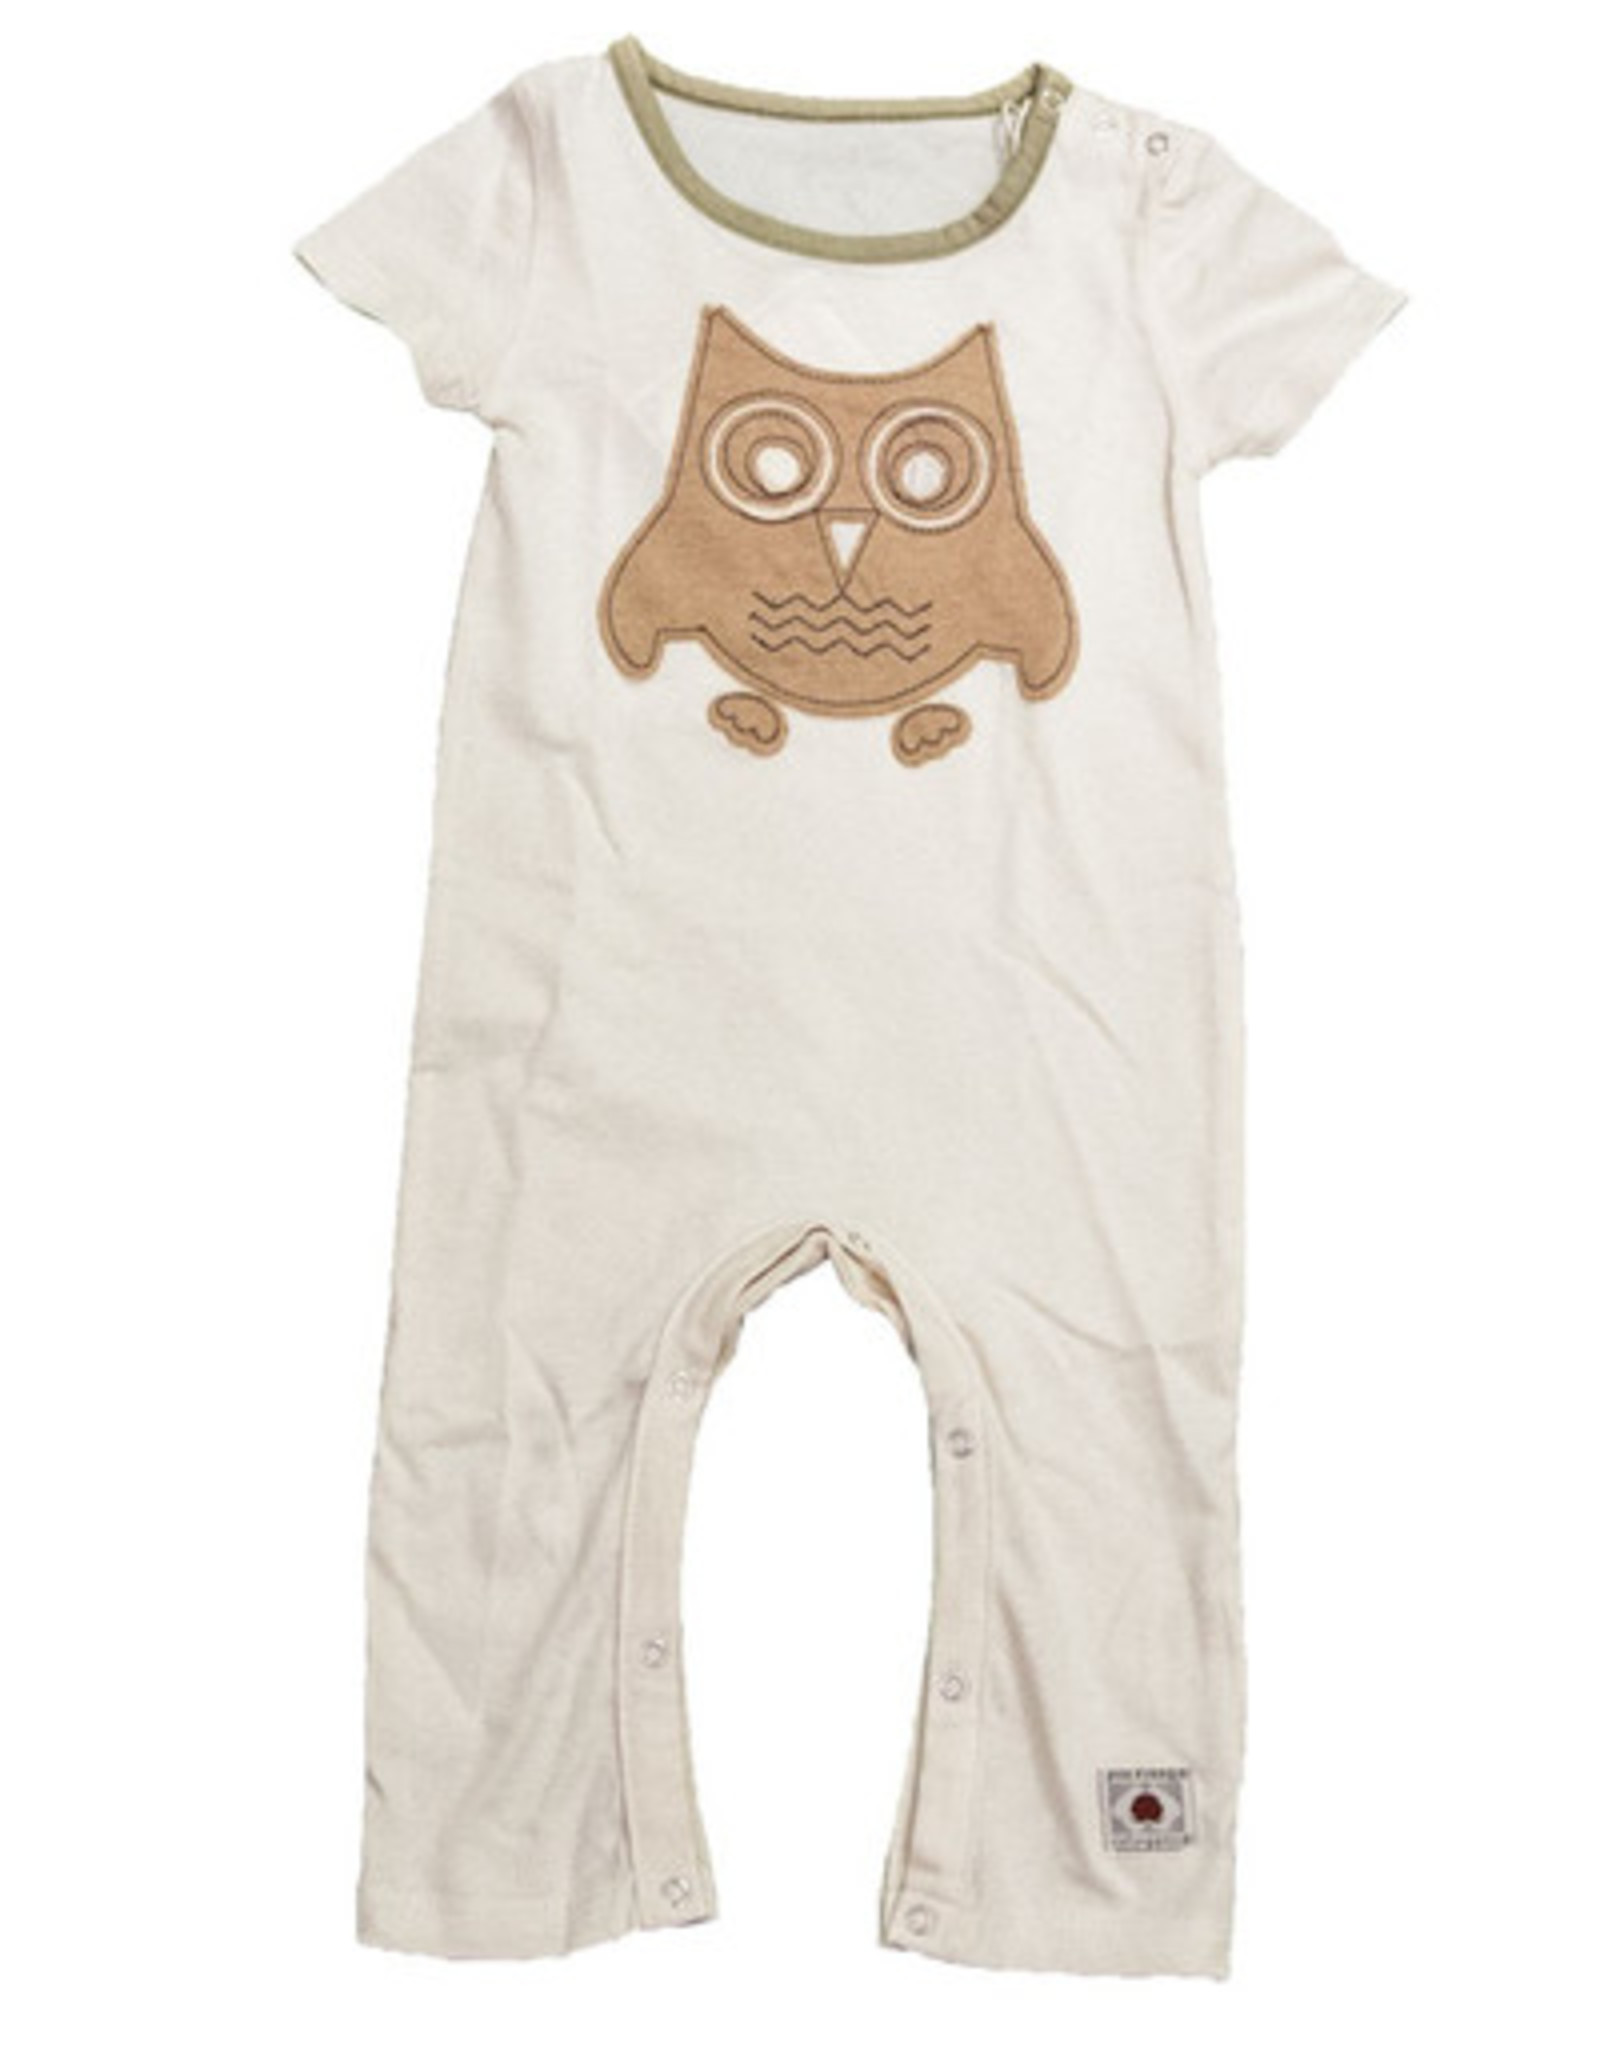 Bubbler with baby owl. sizes 3, 6, 12, 18 months.